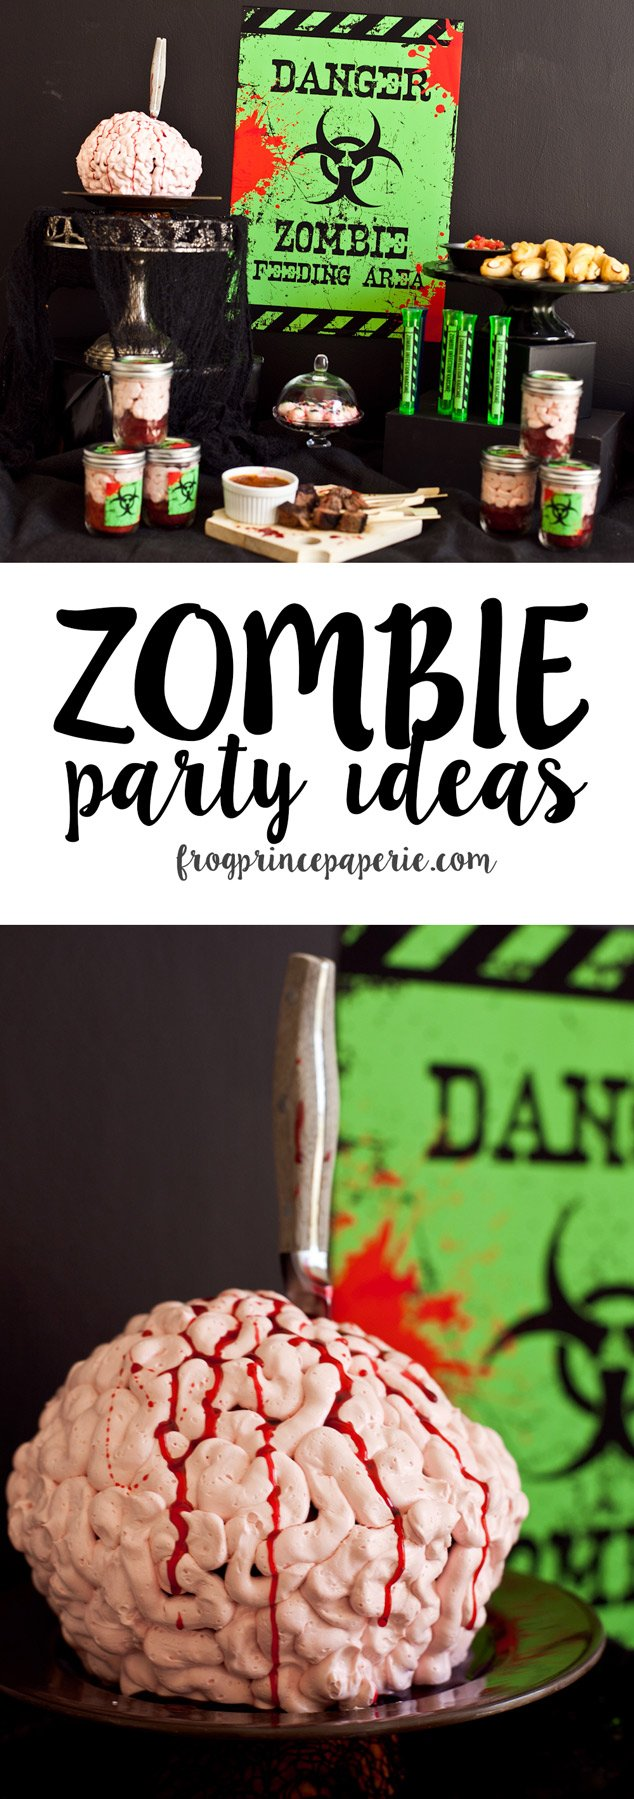 zombie-party-ideas